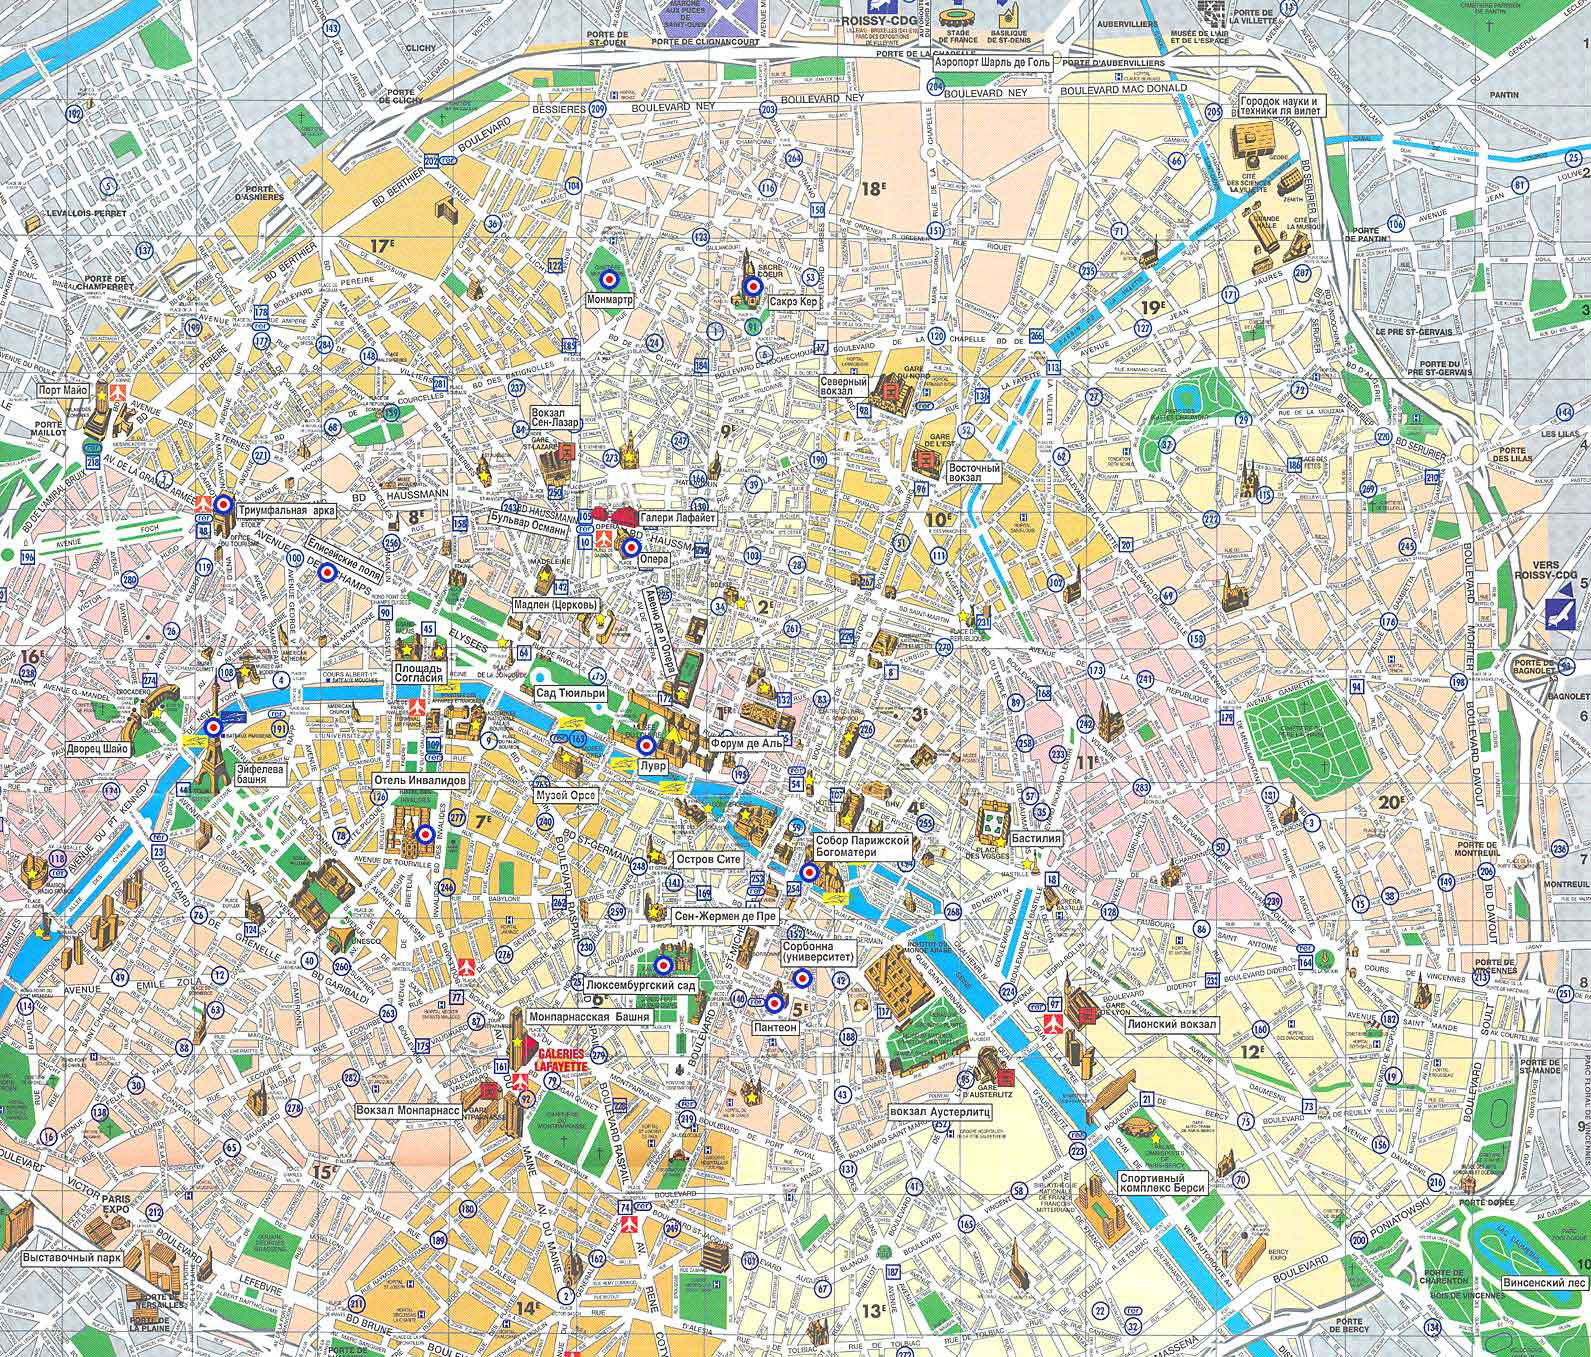 This is an image of Decisive Printable Maps of Paris